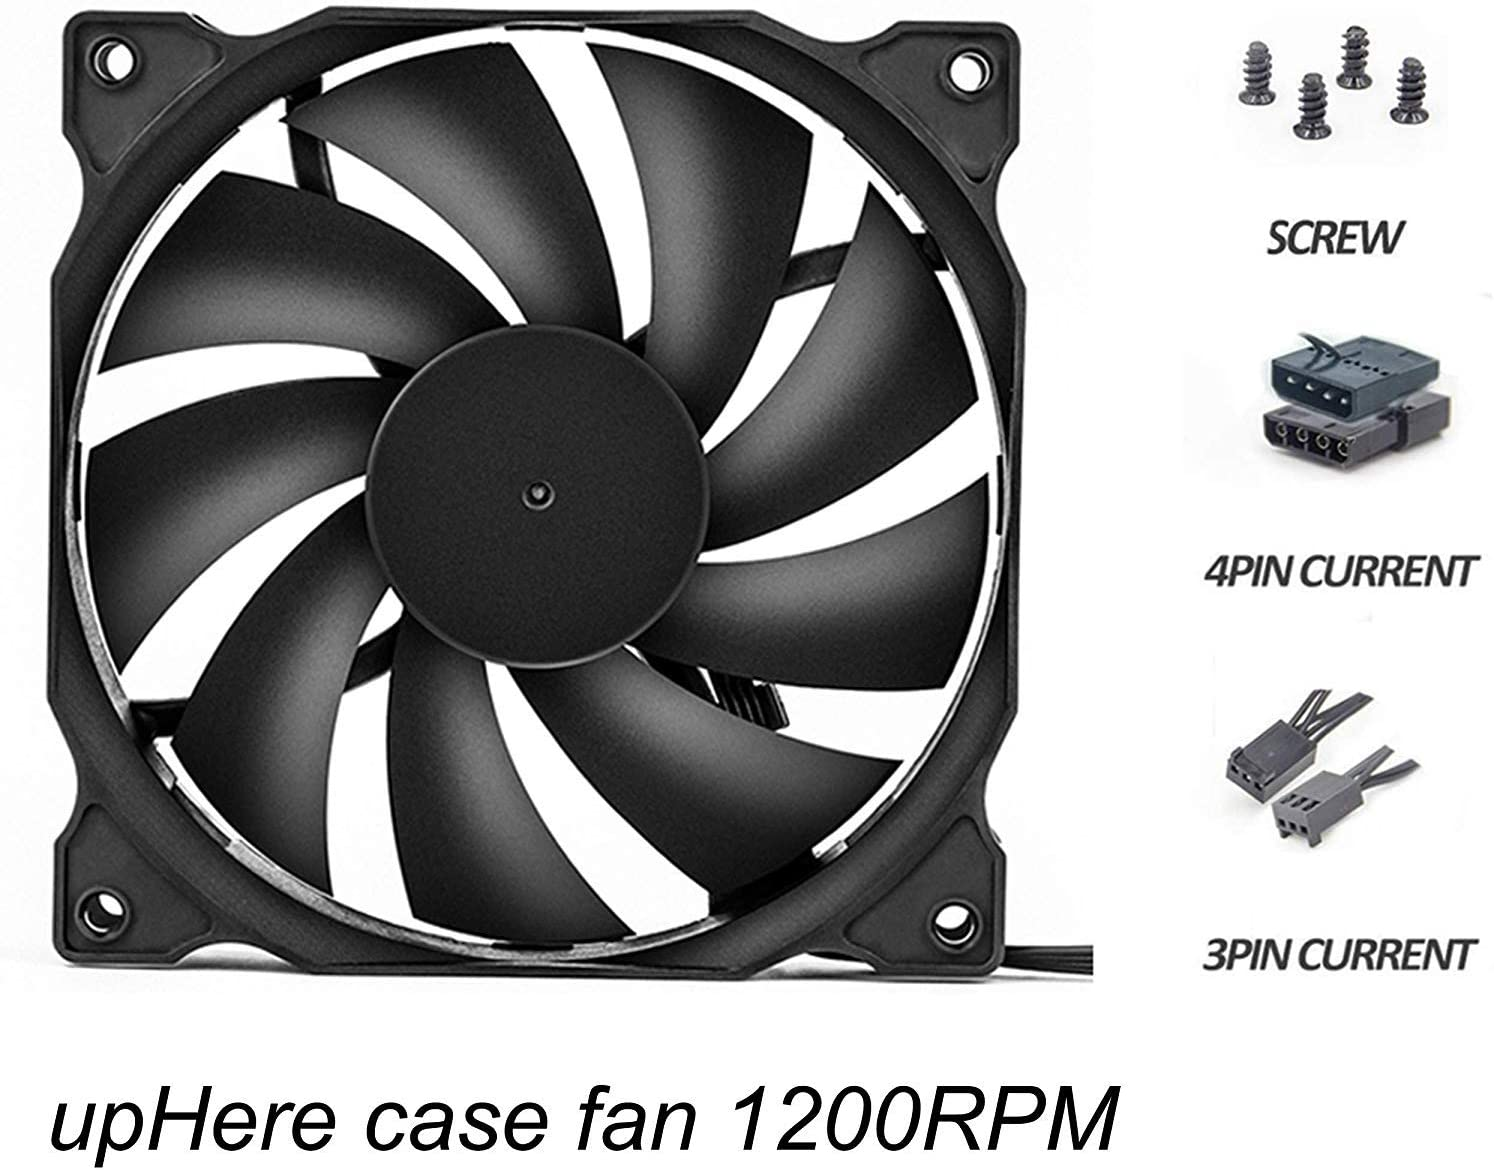 Uphere 120mm Silent Fan For Computer Cases Cpu Coolers And Radiators Ultra Quiet High Airflow Computer Case Fan 3 Pack 12bk3 3 Amazon Co Uk Computers Accessories